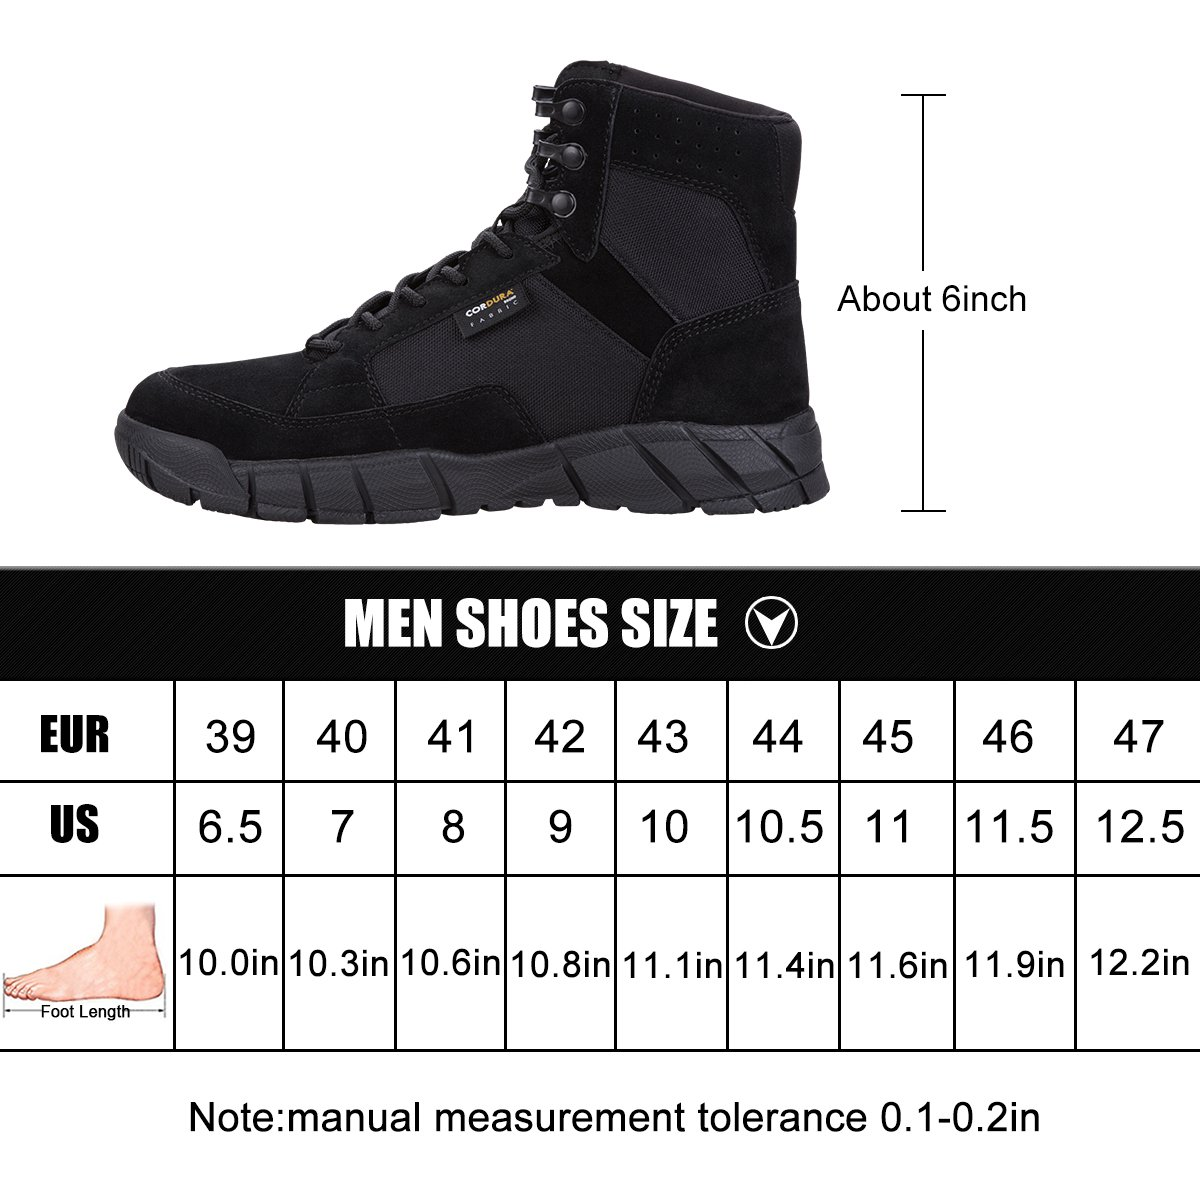 Men's Tactical Boots 6'' inch Lightweight Military Boots for Hiking Work Boots Breathable Desert Boots (Black, 11) by FREE SOLDIER (Image #7)